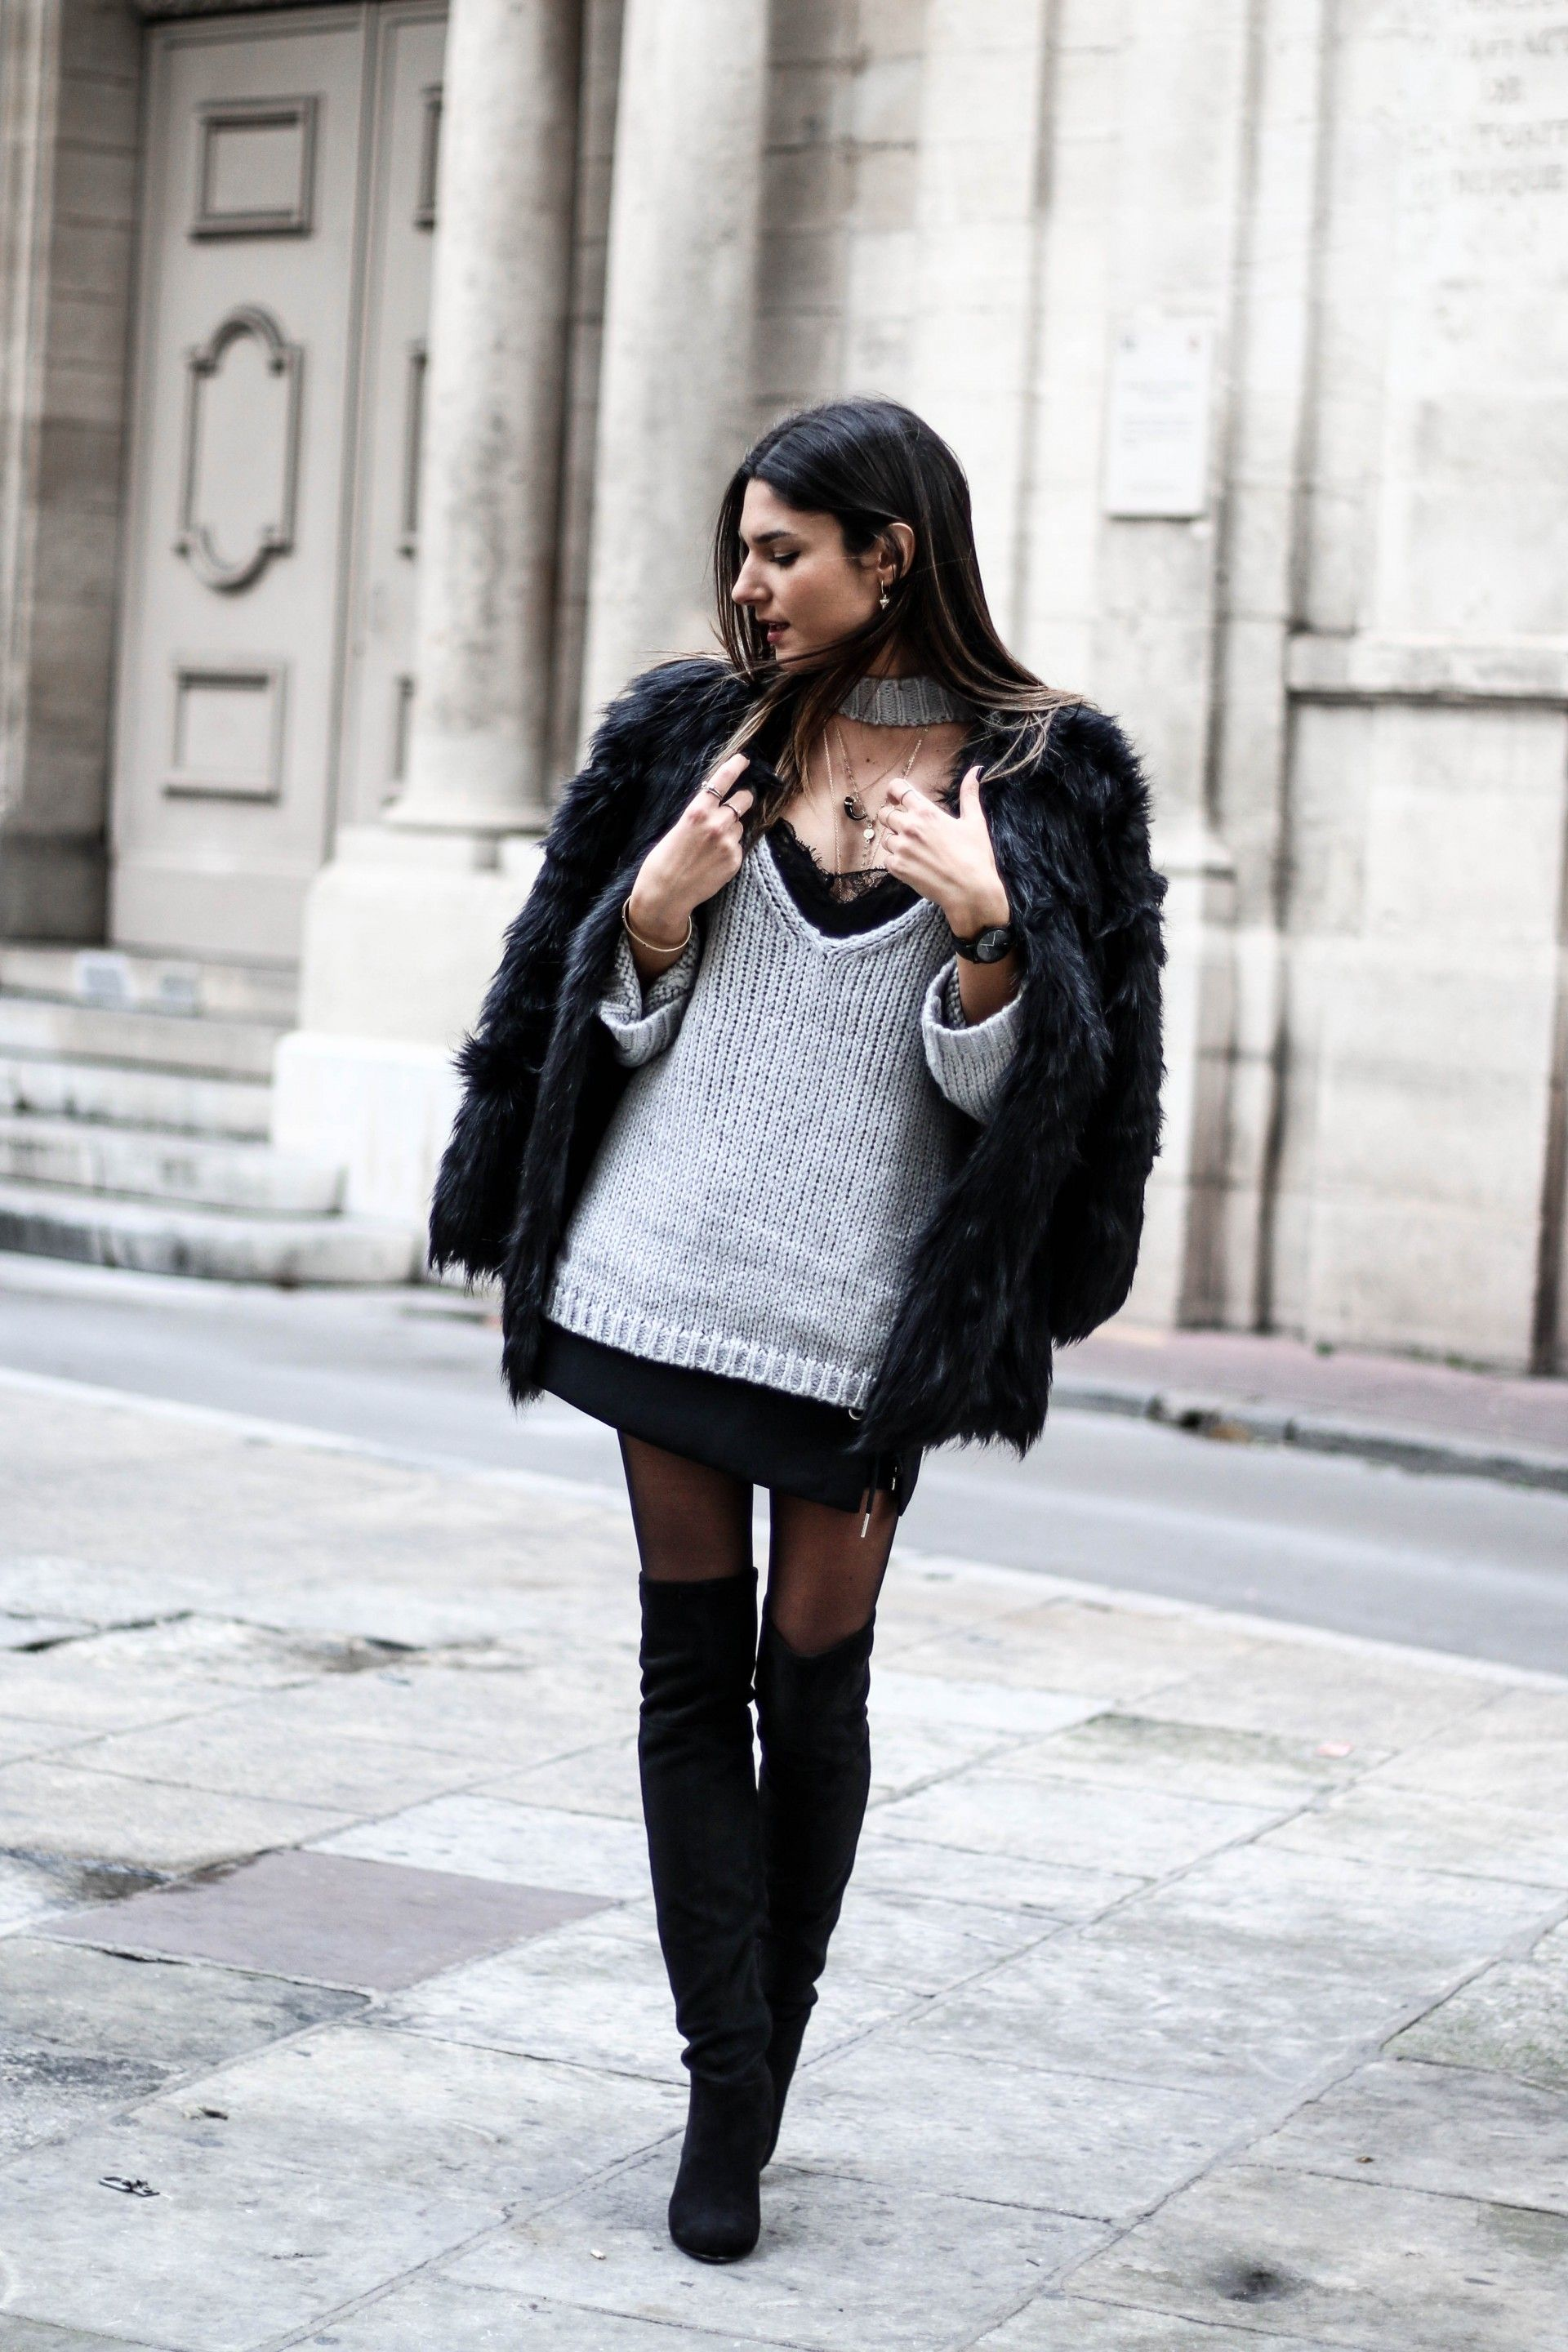 25 Outfits With Tights to Keep You Warm andStylish